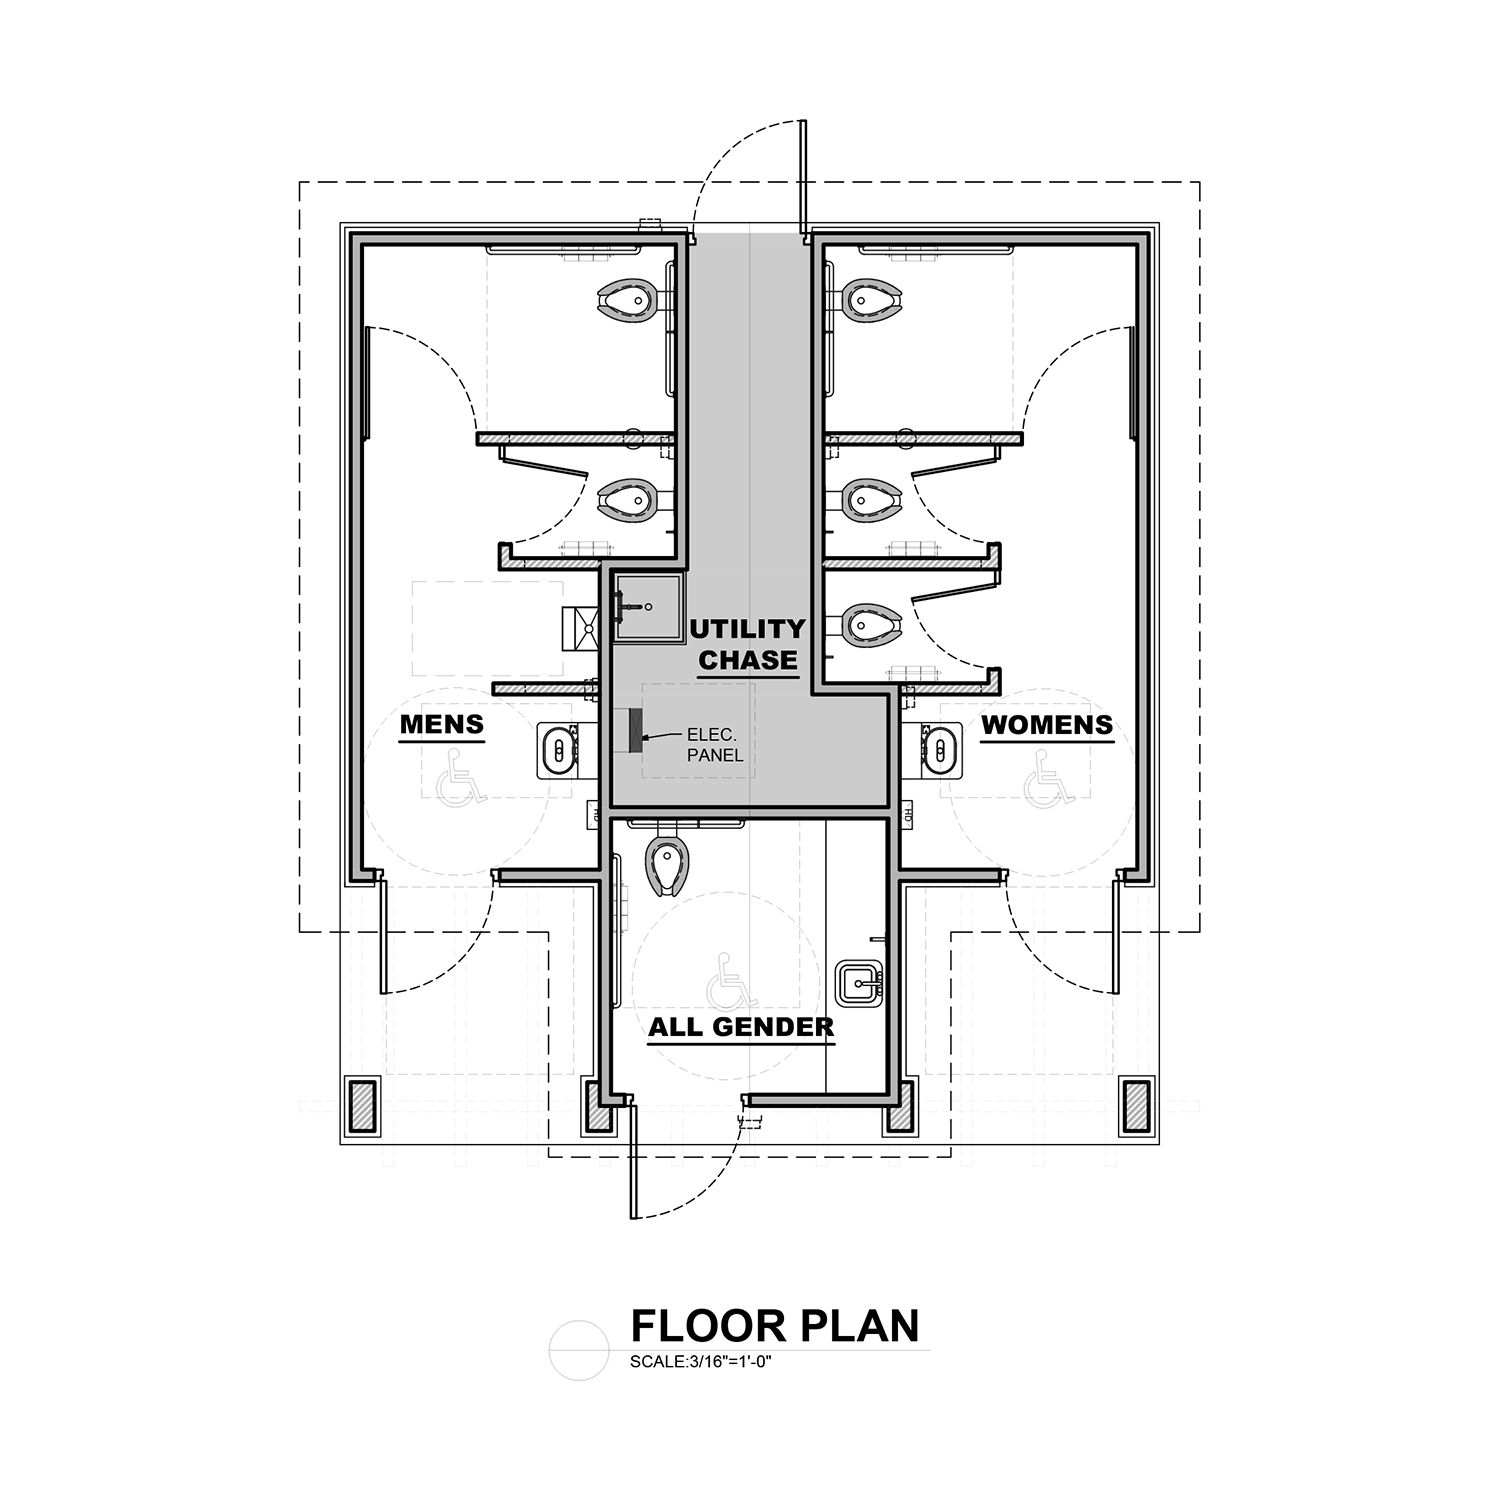 Best of bathroom floor plan house floor ideas for 10x10 bathroom floor plans